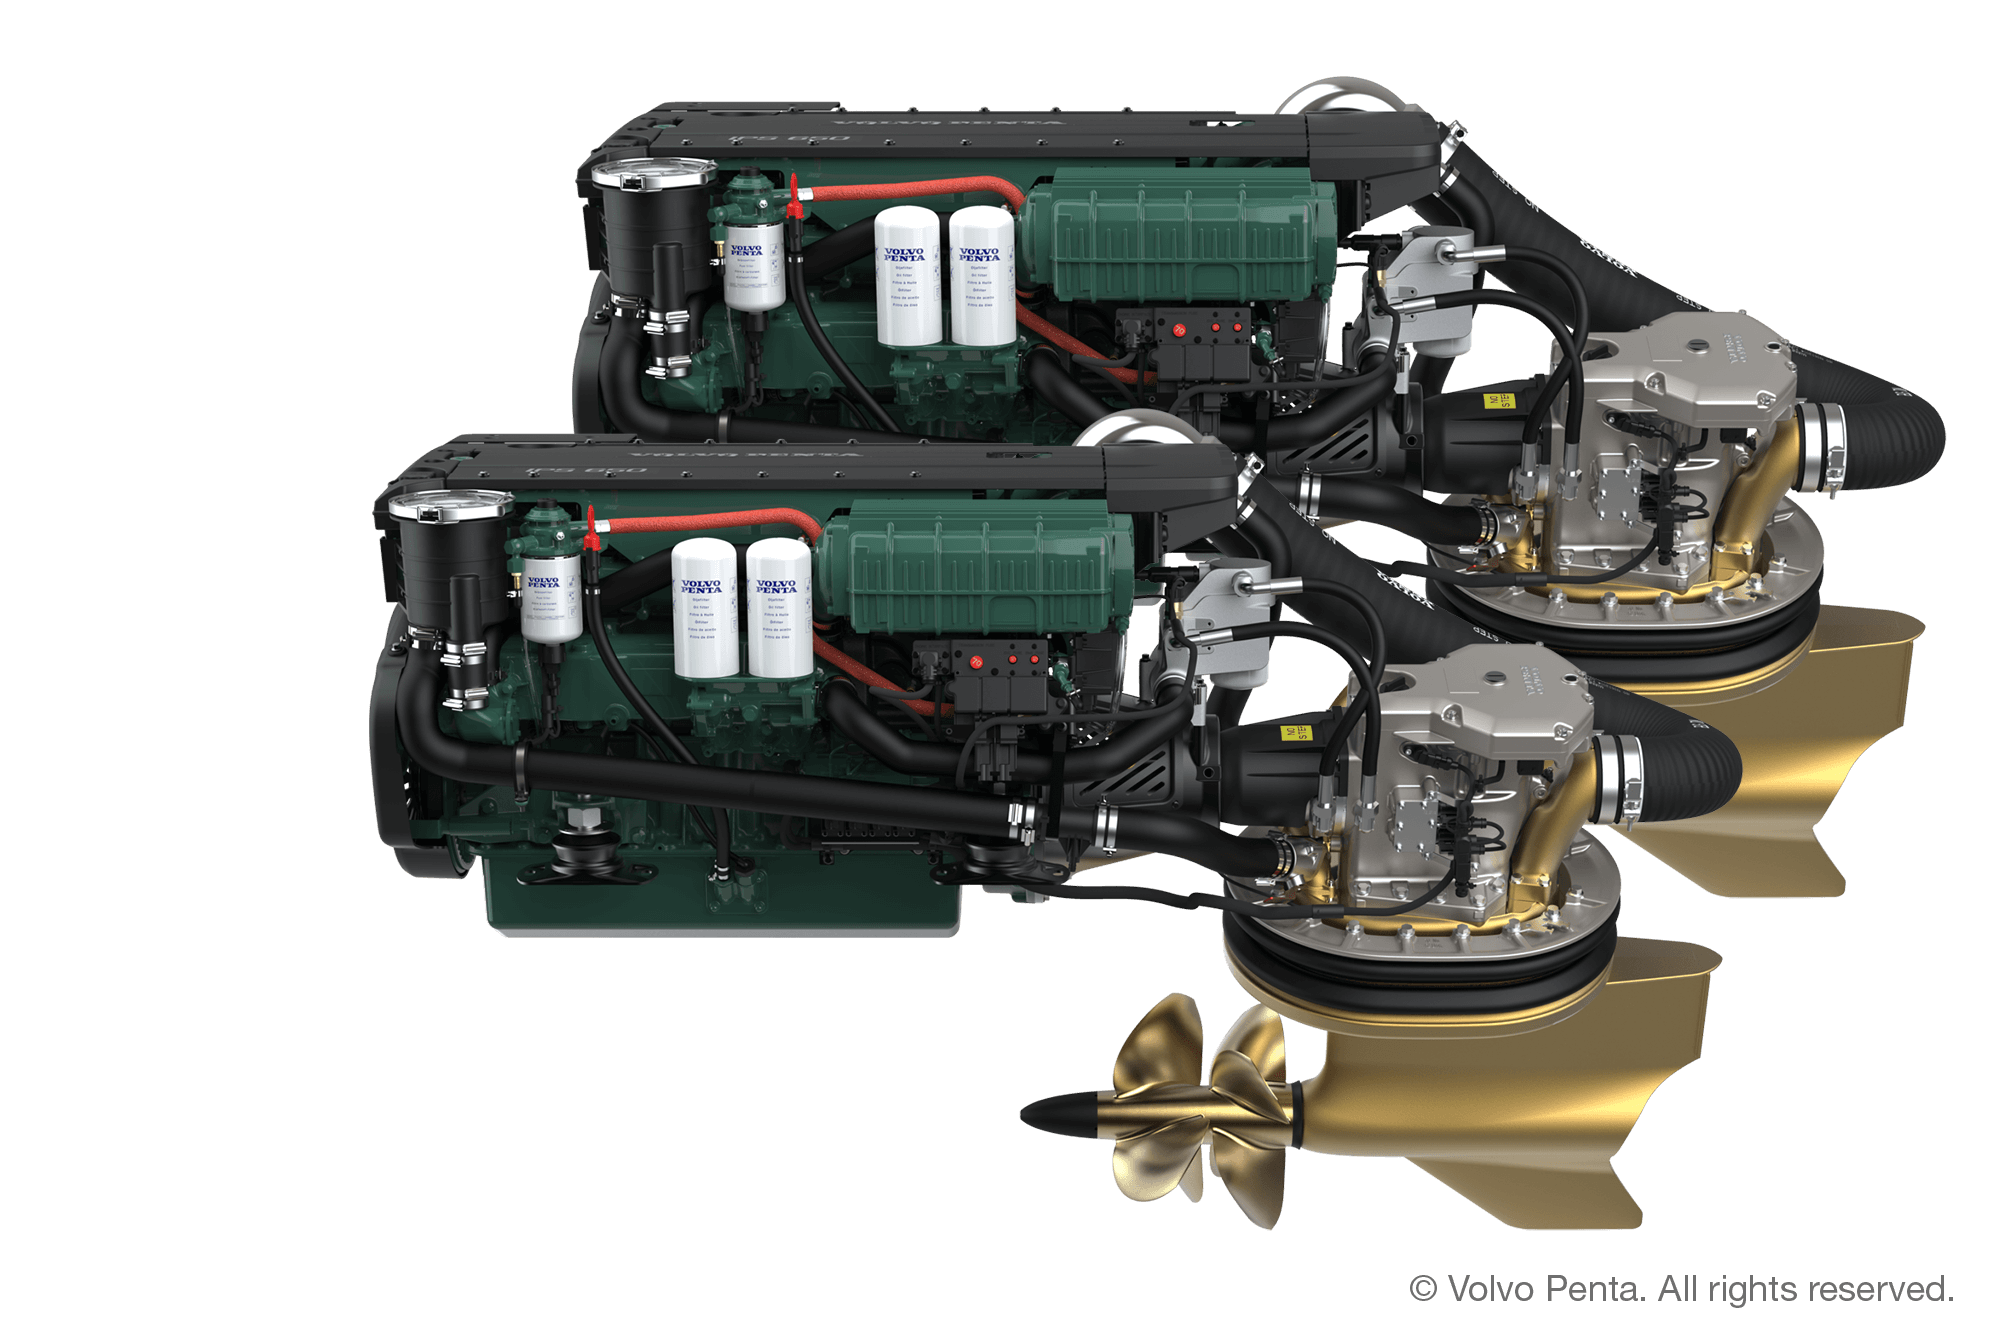 2 Volvo Penta IPS450 (340 hp) - Pod drive with propeller T3